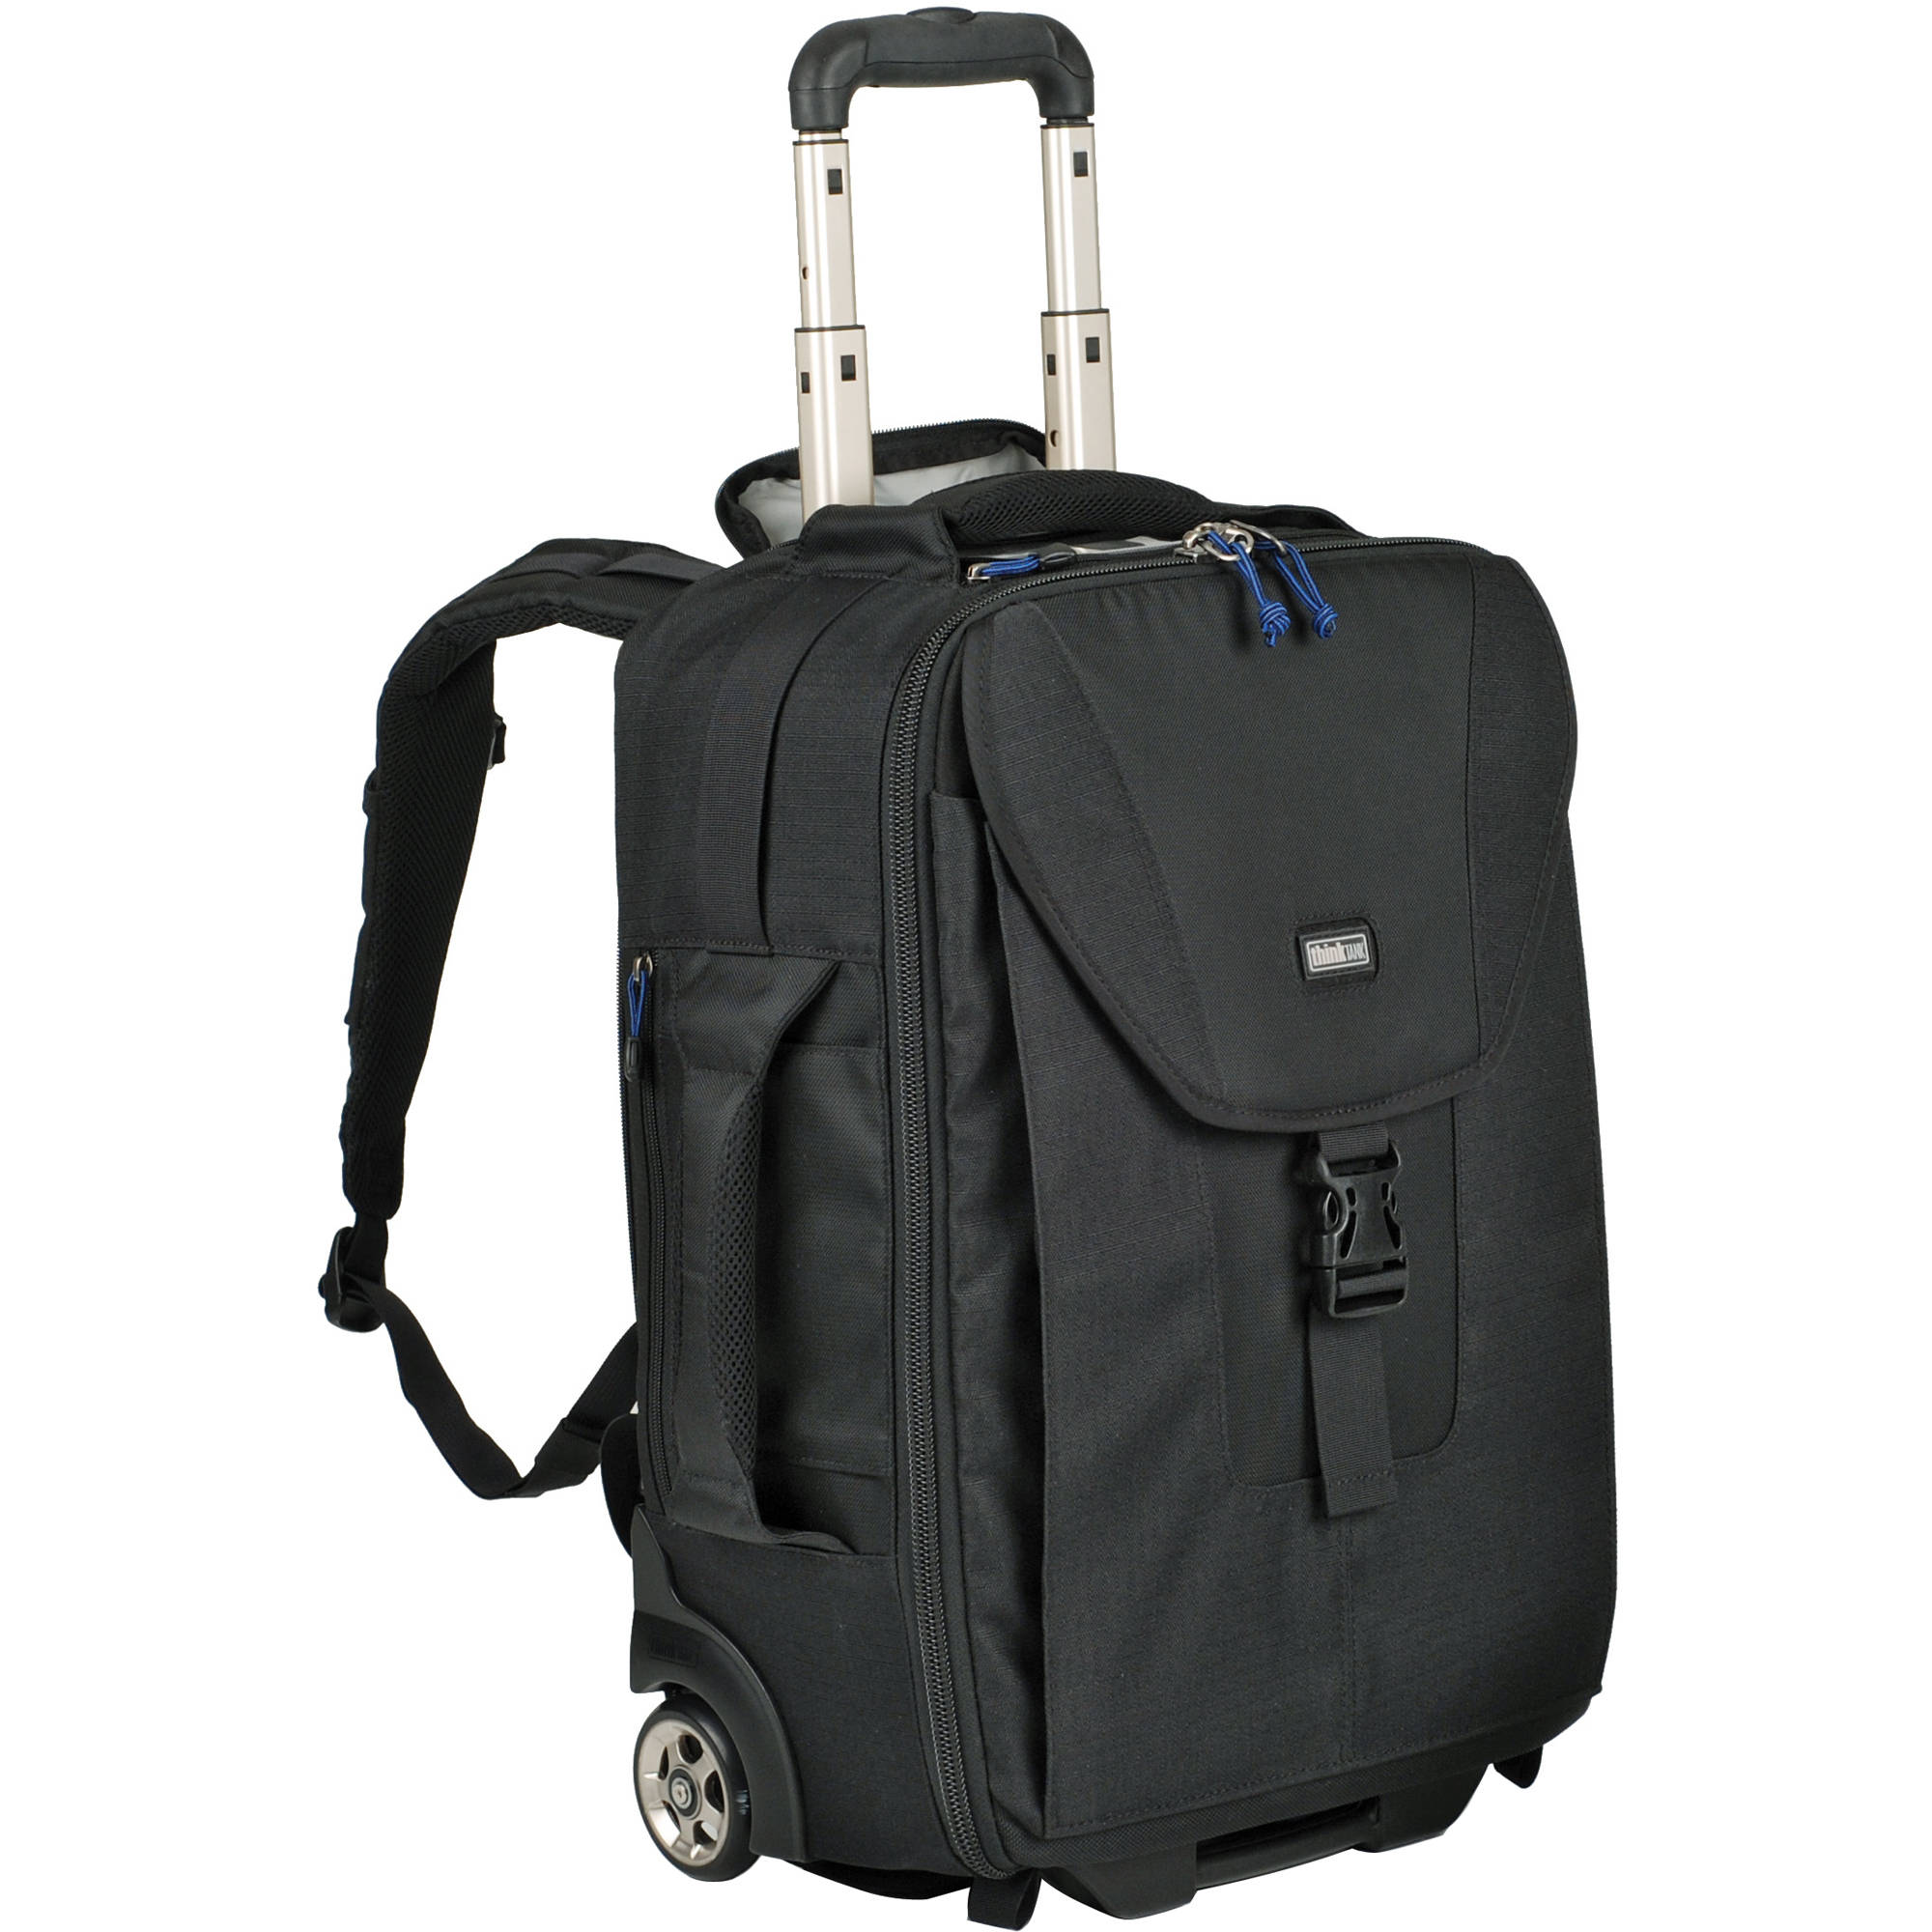 Think Tank Photo Airport TakeOff Rolling Camera Bag (Black) 498